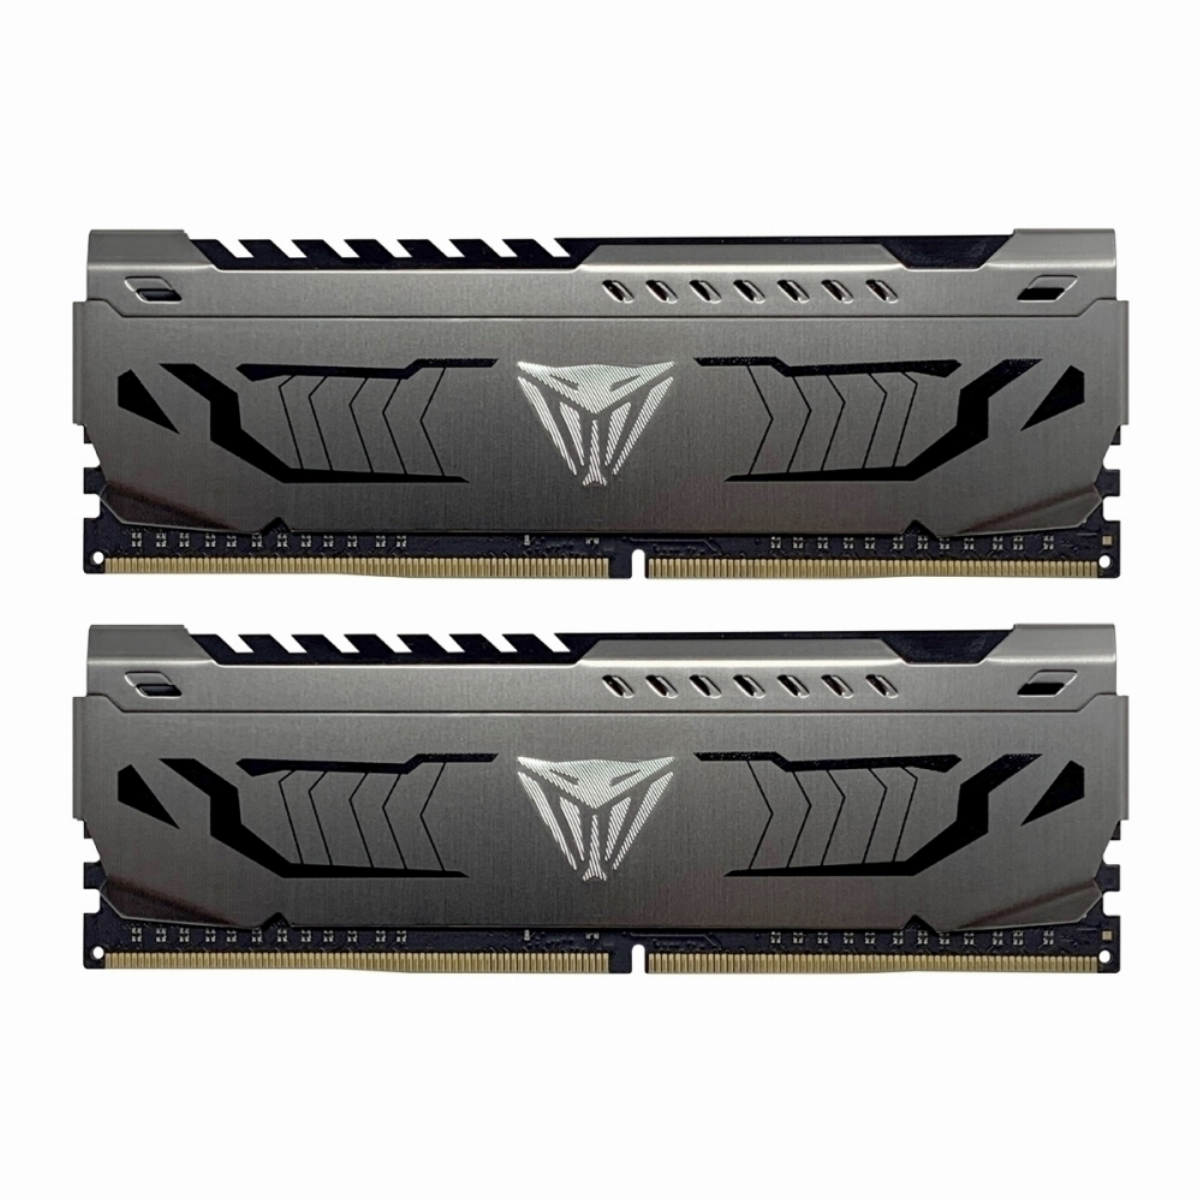 Памет Patriot Viper Steel 16GB (2x8GB) 3600Mhz DDR4 CL17